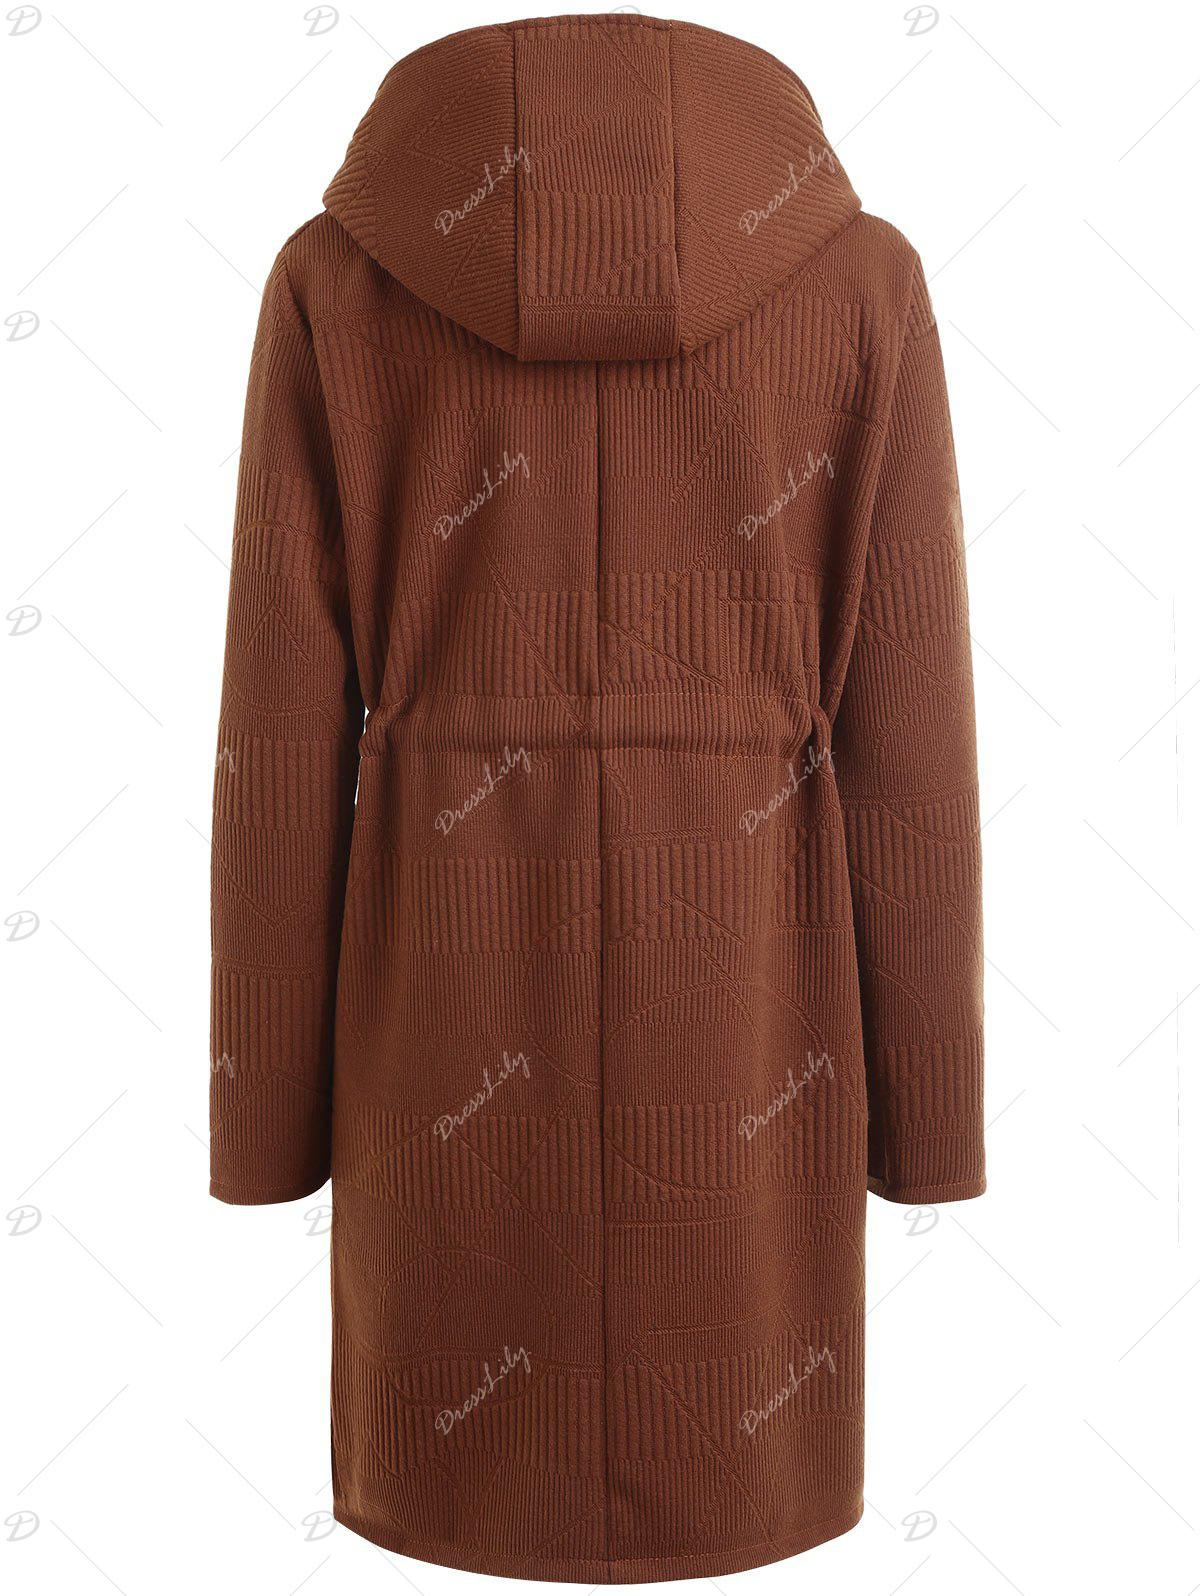 Drawstring Waist Plus Size Long Hooded Coat - COFFEE 5XL